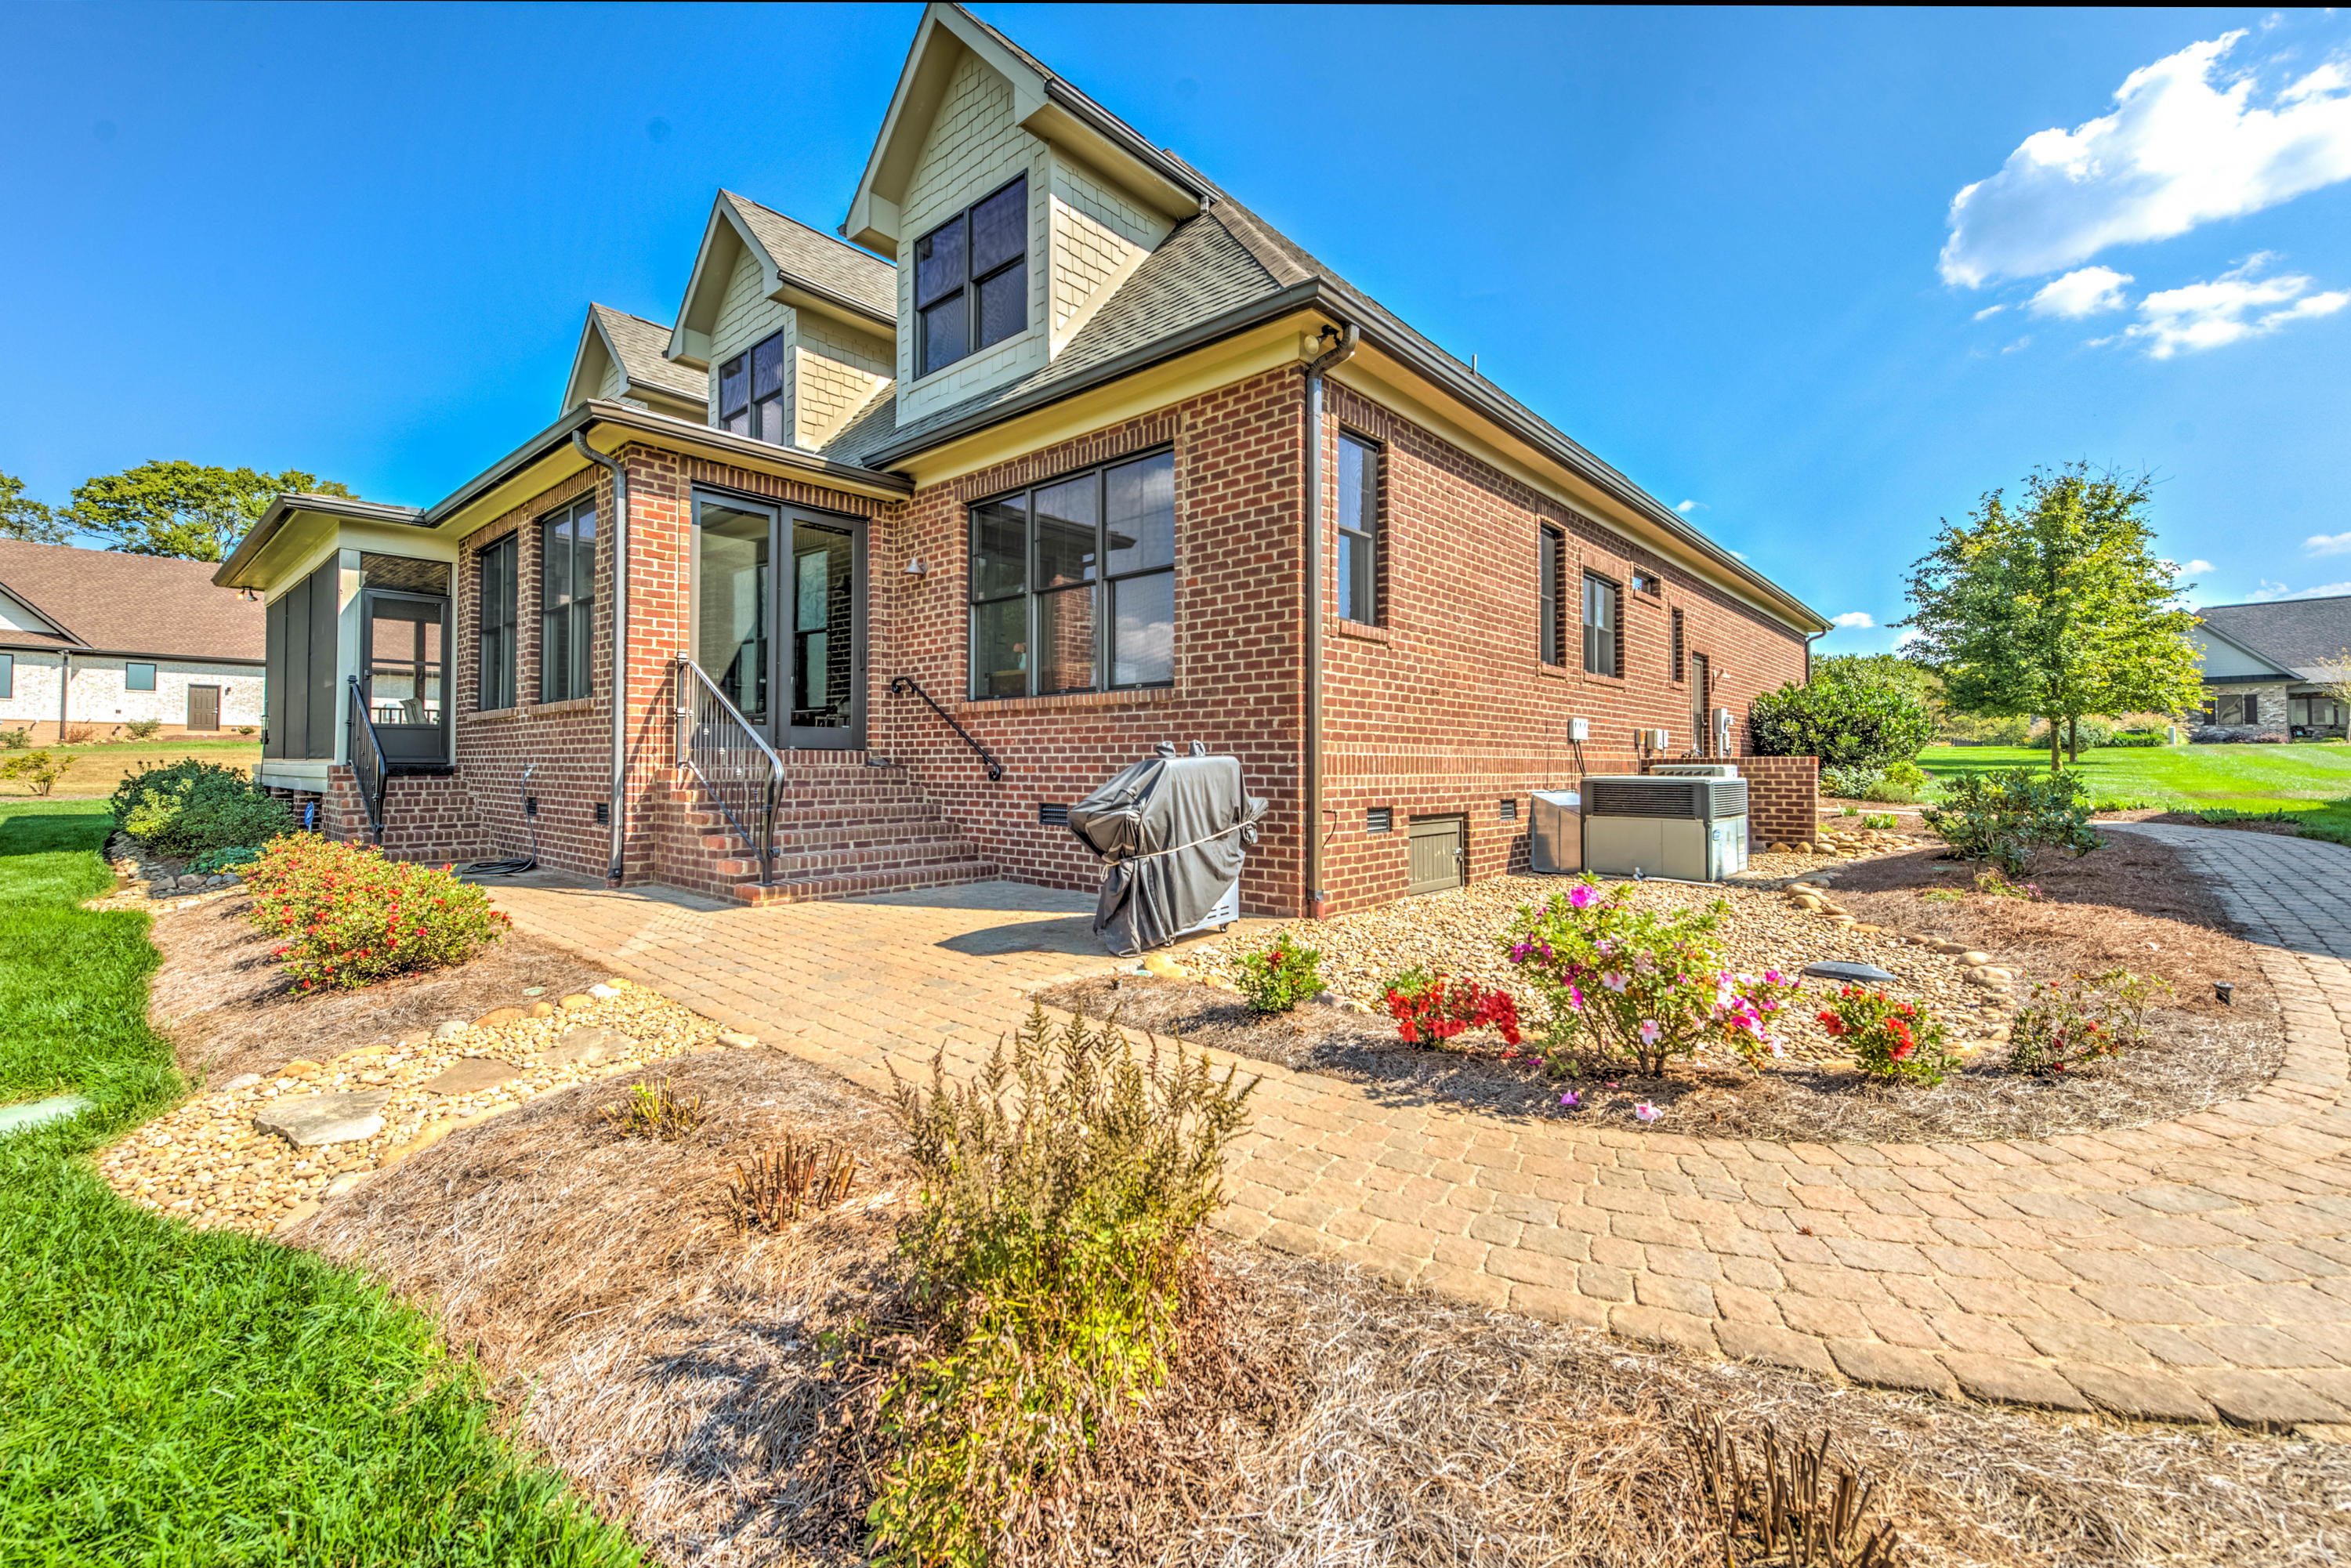 3710 Promontory Point: